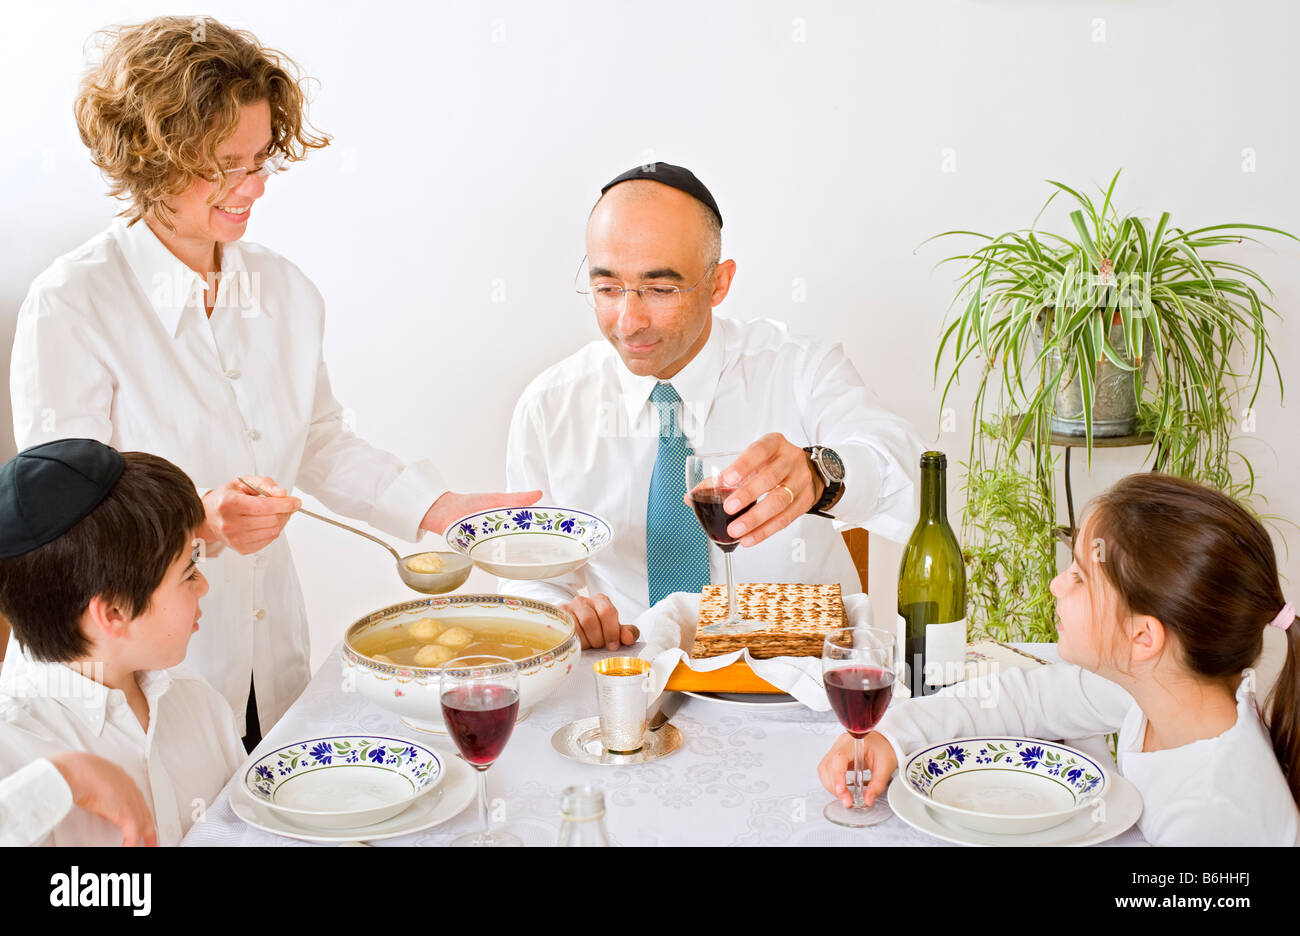 father mother son and daughter in seder celebrating passover - Stock Image